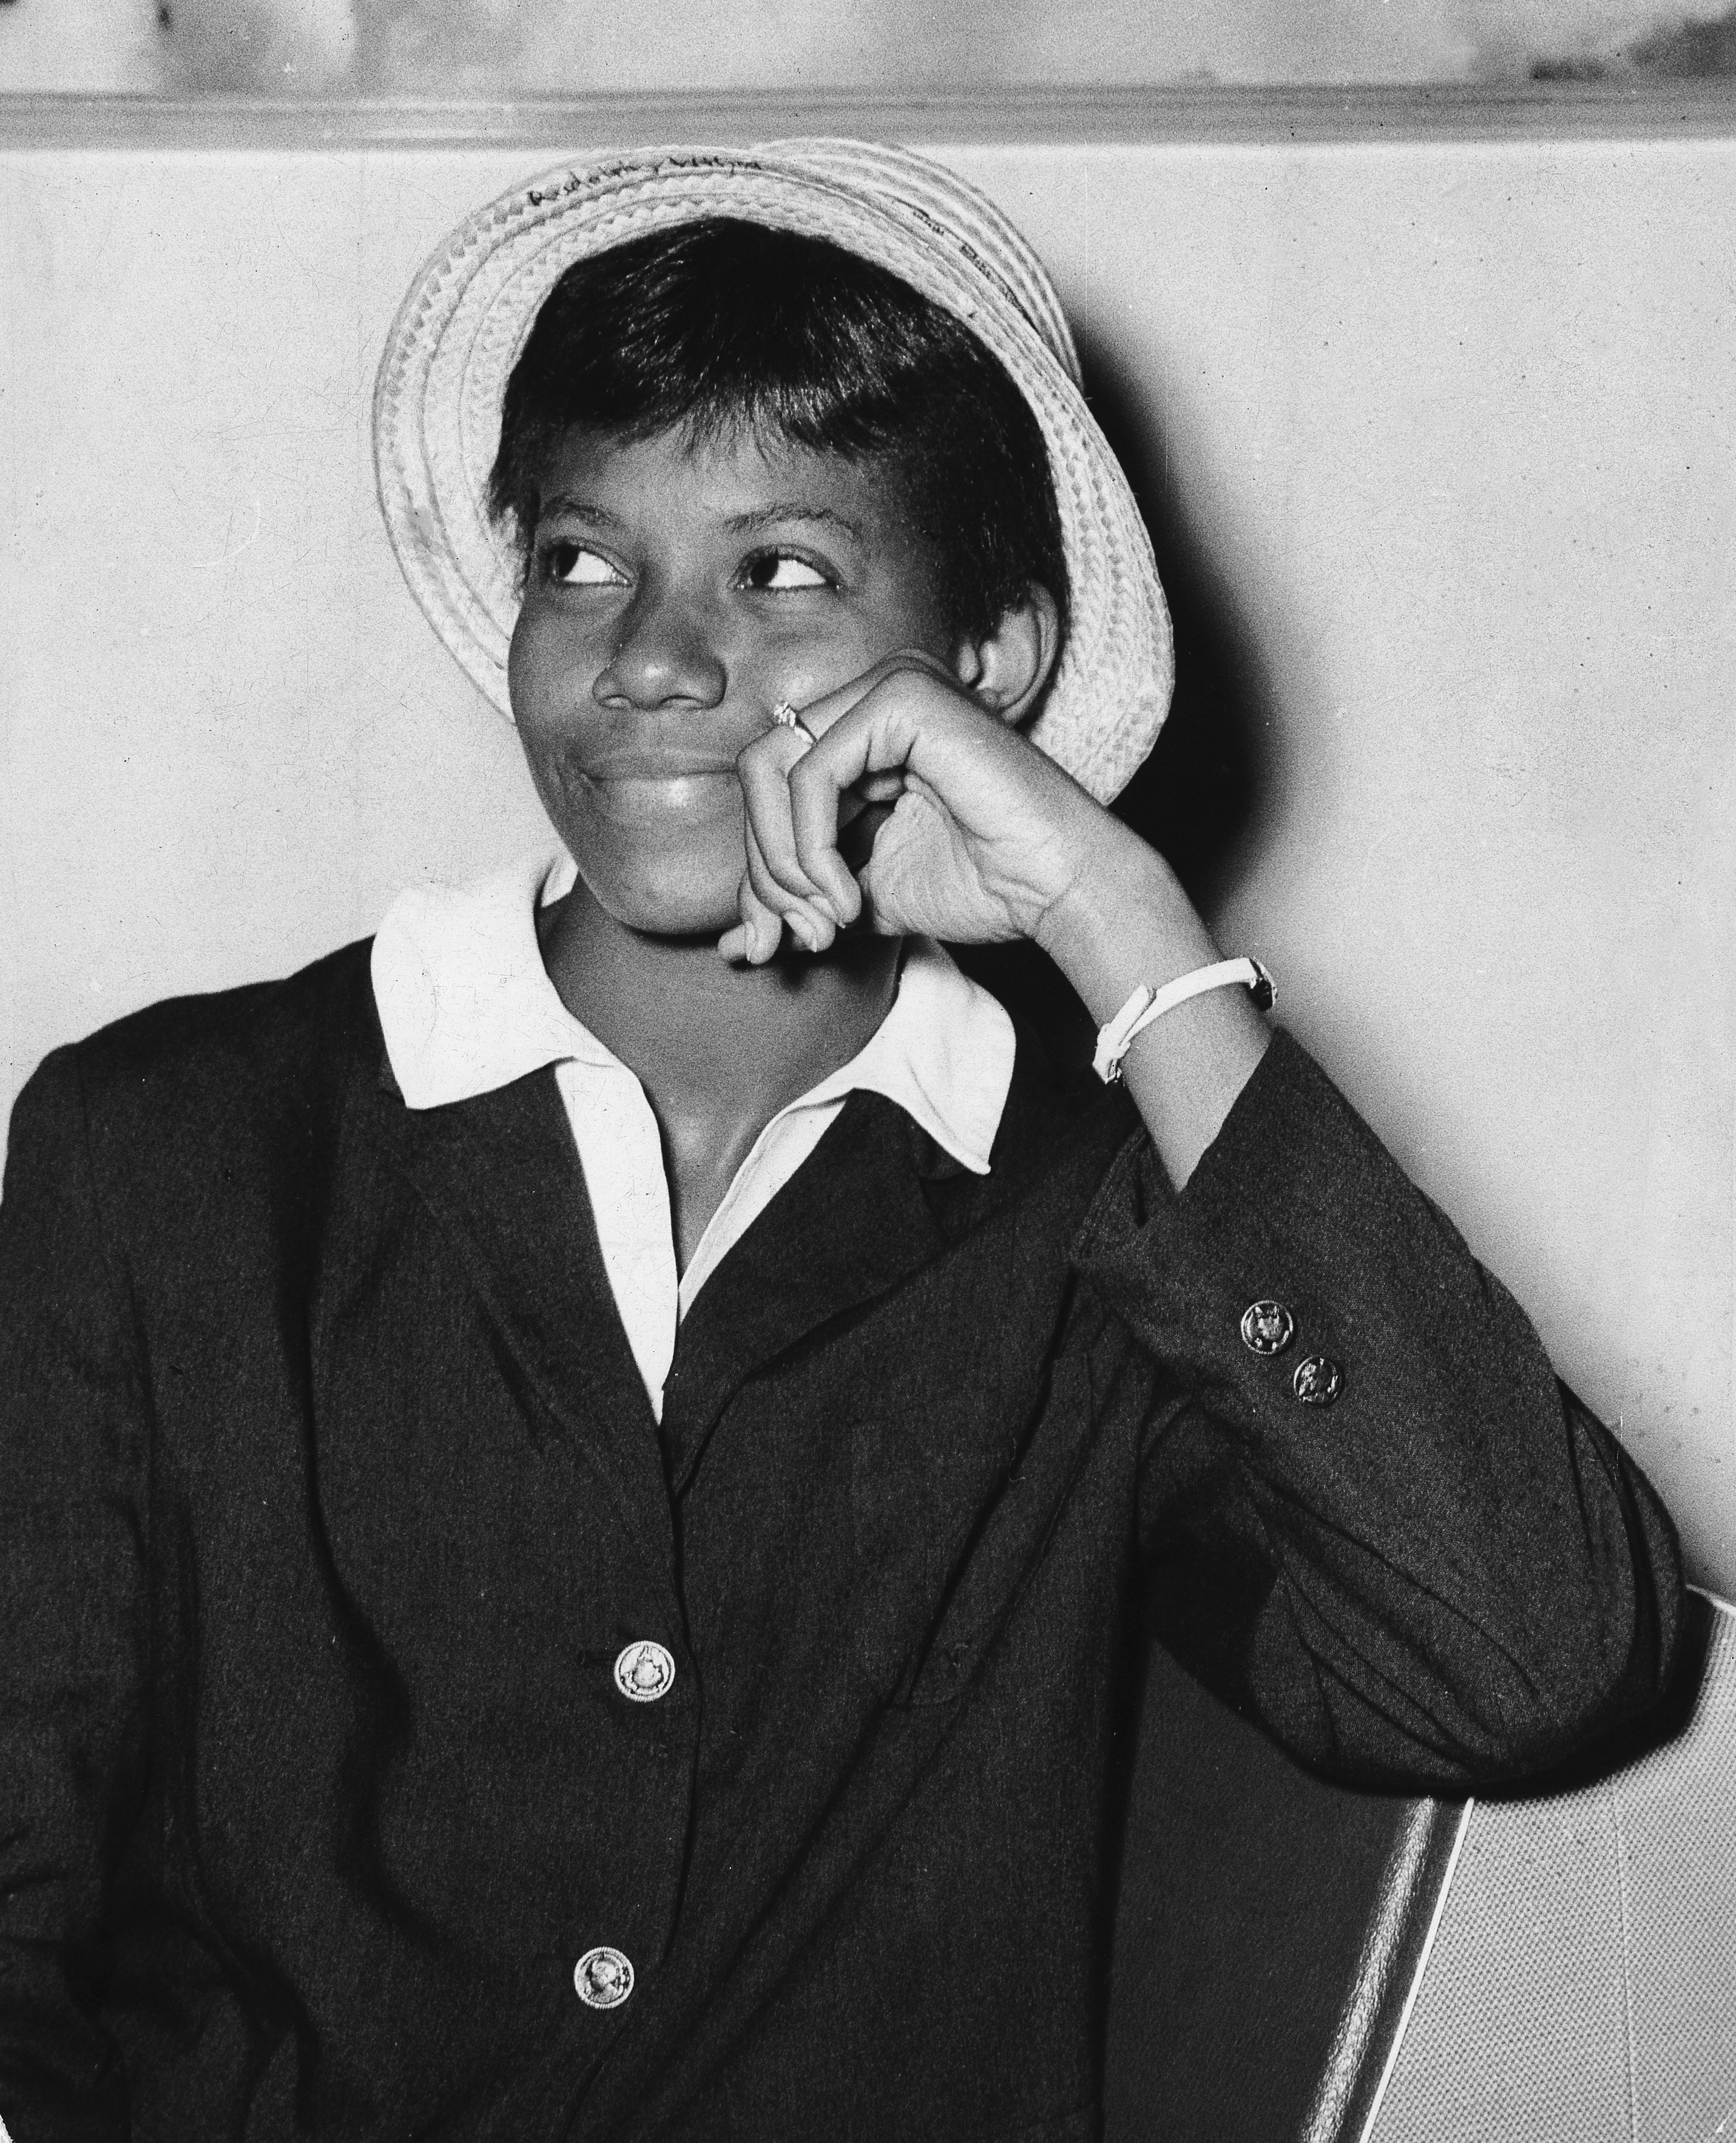 Portrait of Olympic champion Wilma Rudolph during the Summer Olympics in Rome 1960   Photo: Getty Images